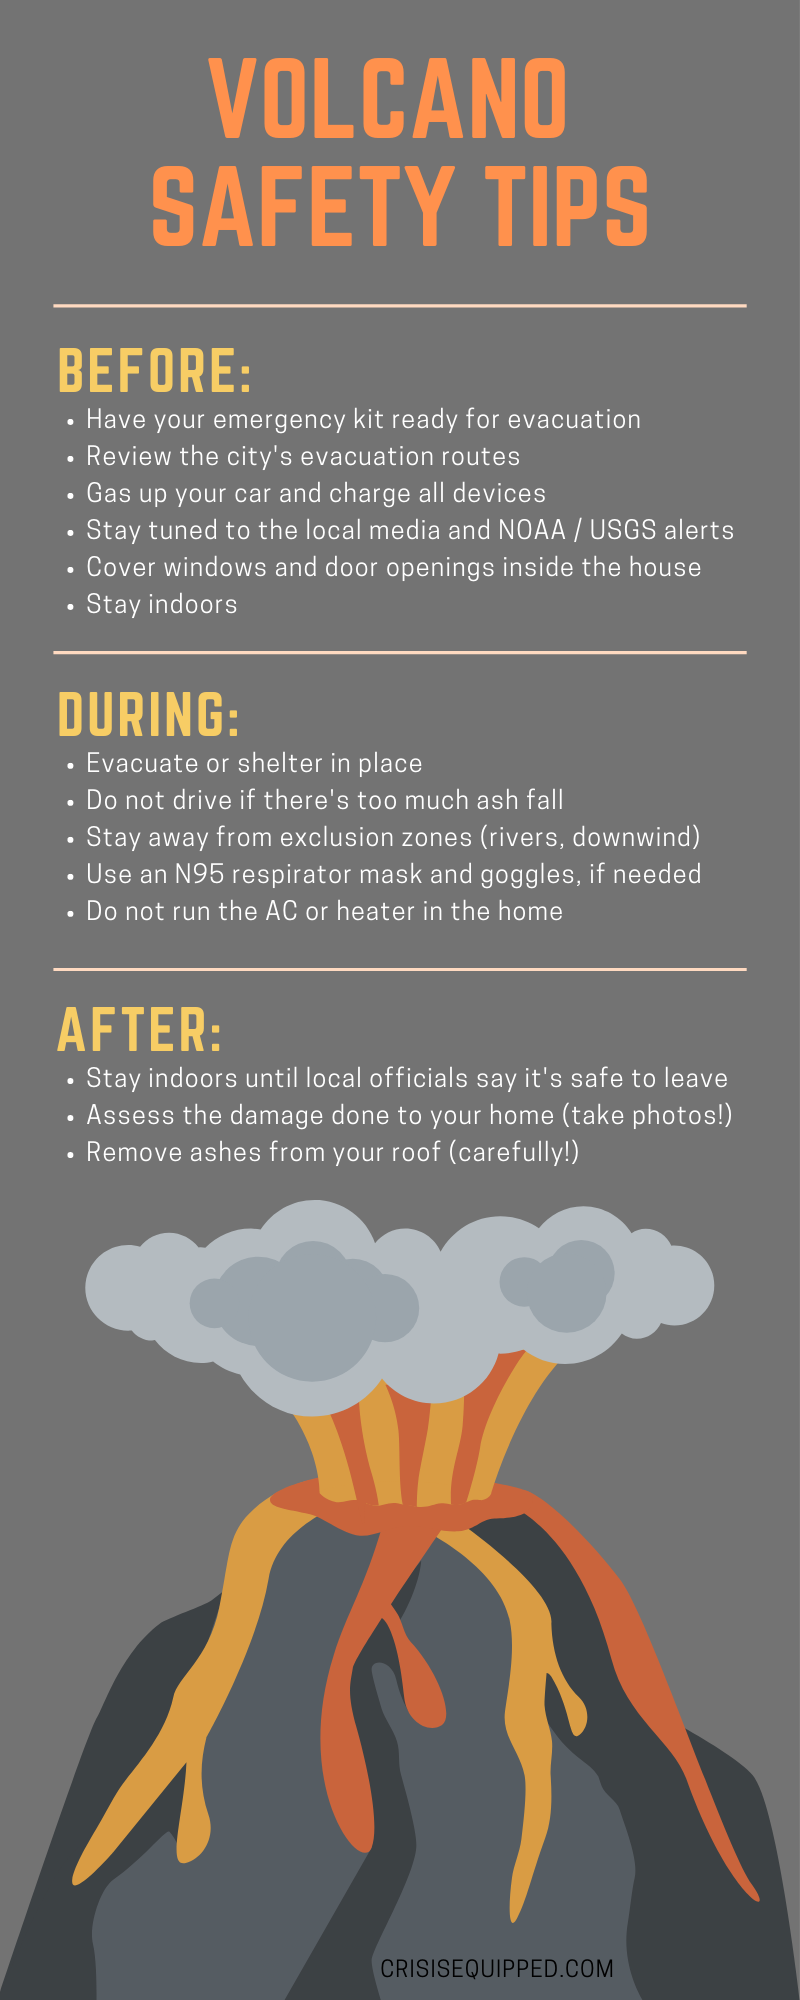 Volcano Preparedness Guide in 2020 Workplace safety tips